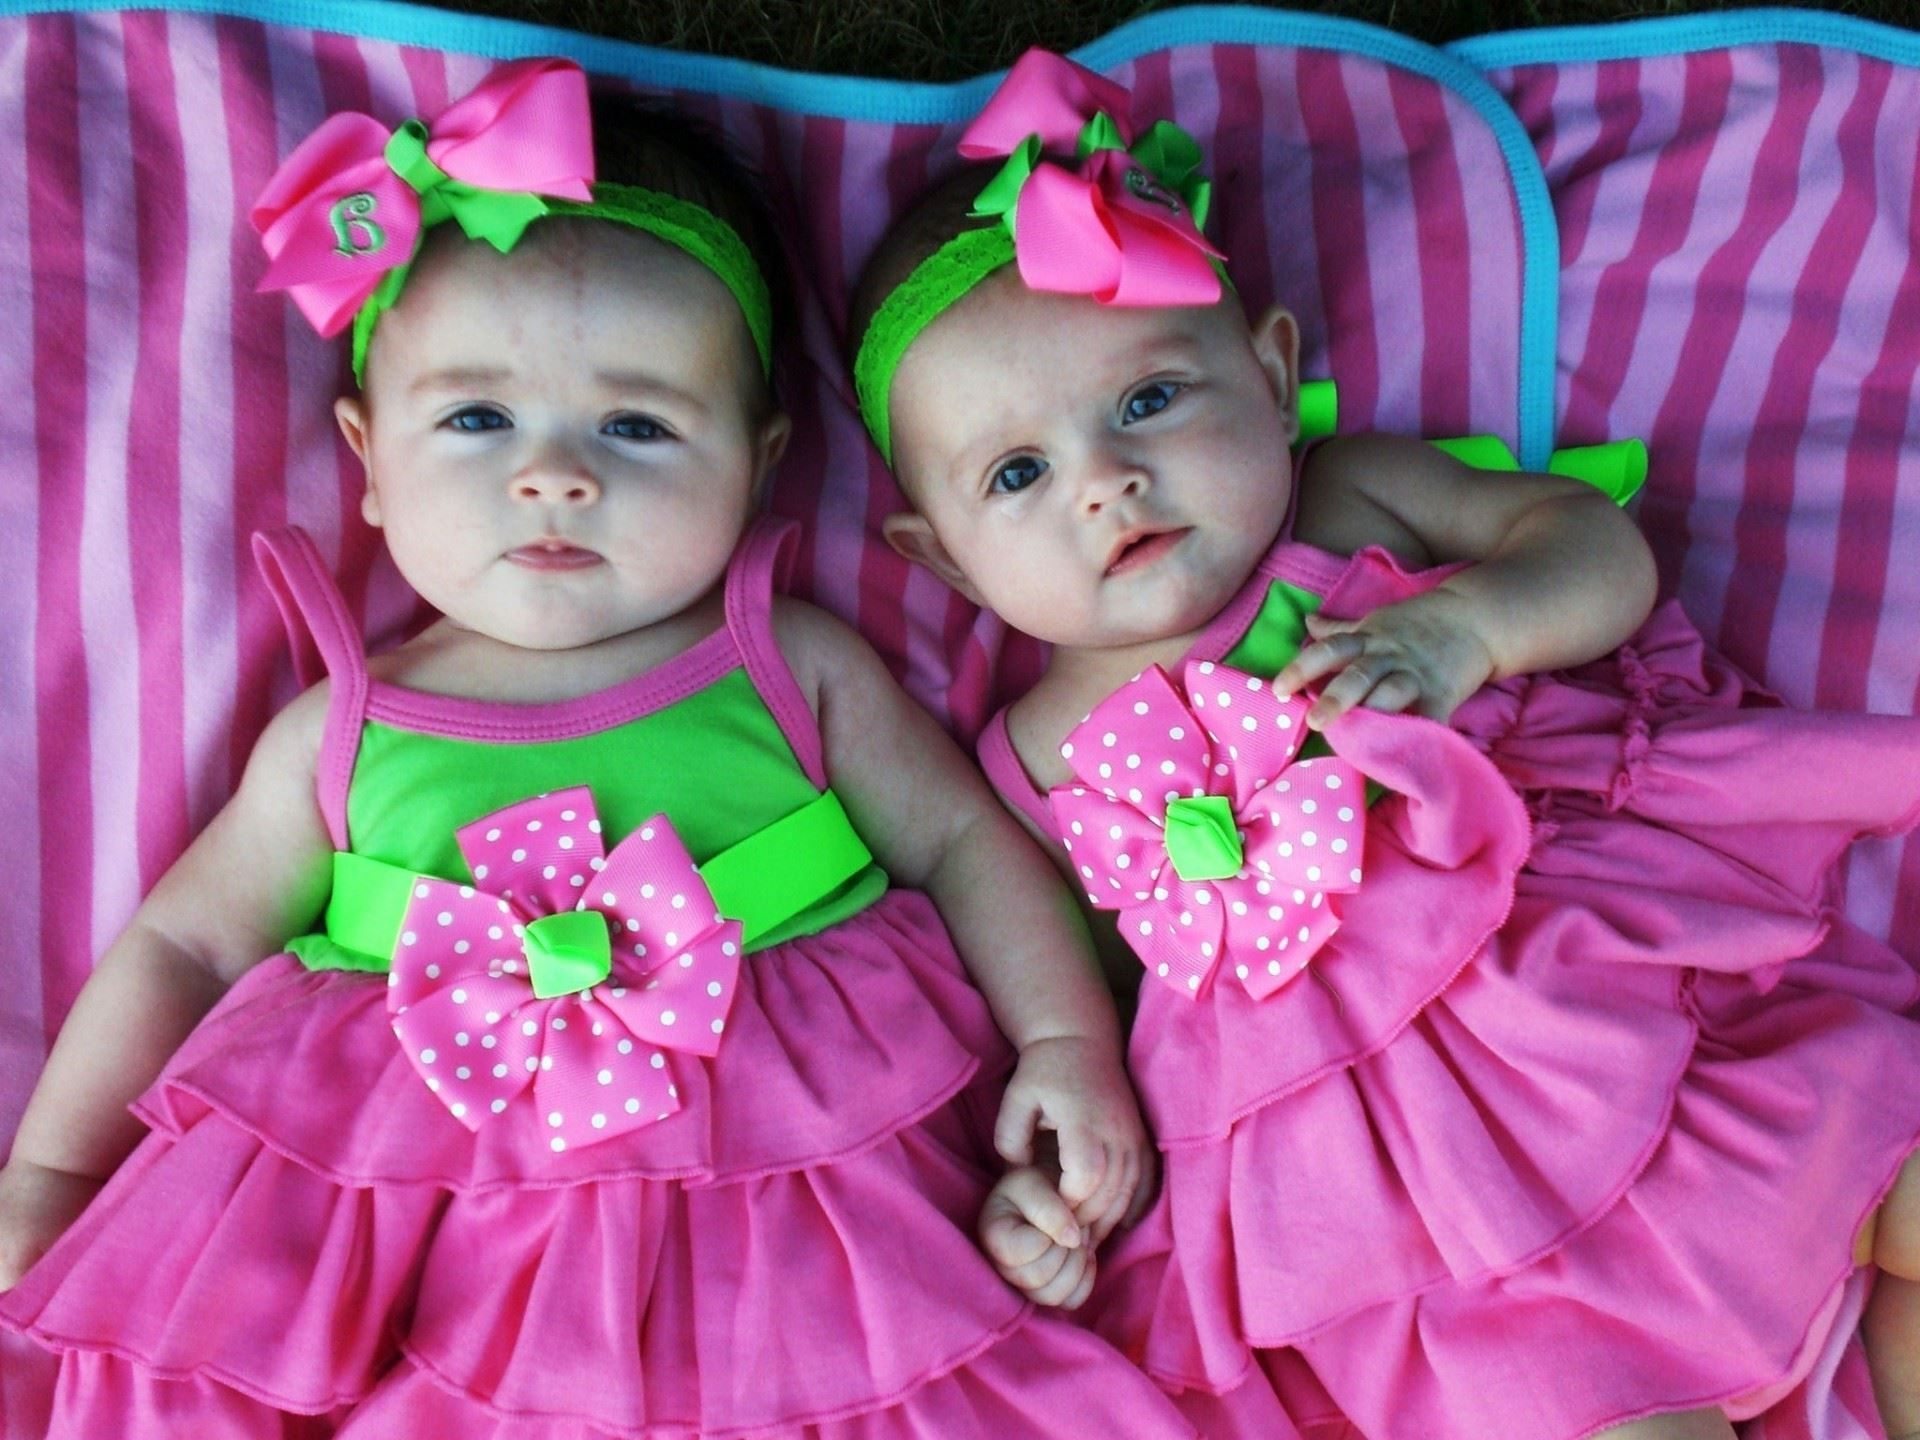 Twins Hd Posted By Ethan Peltier